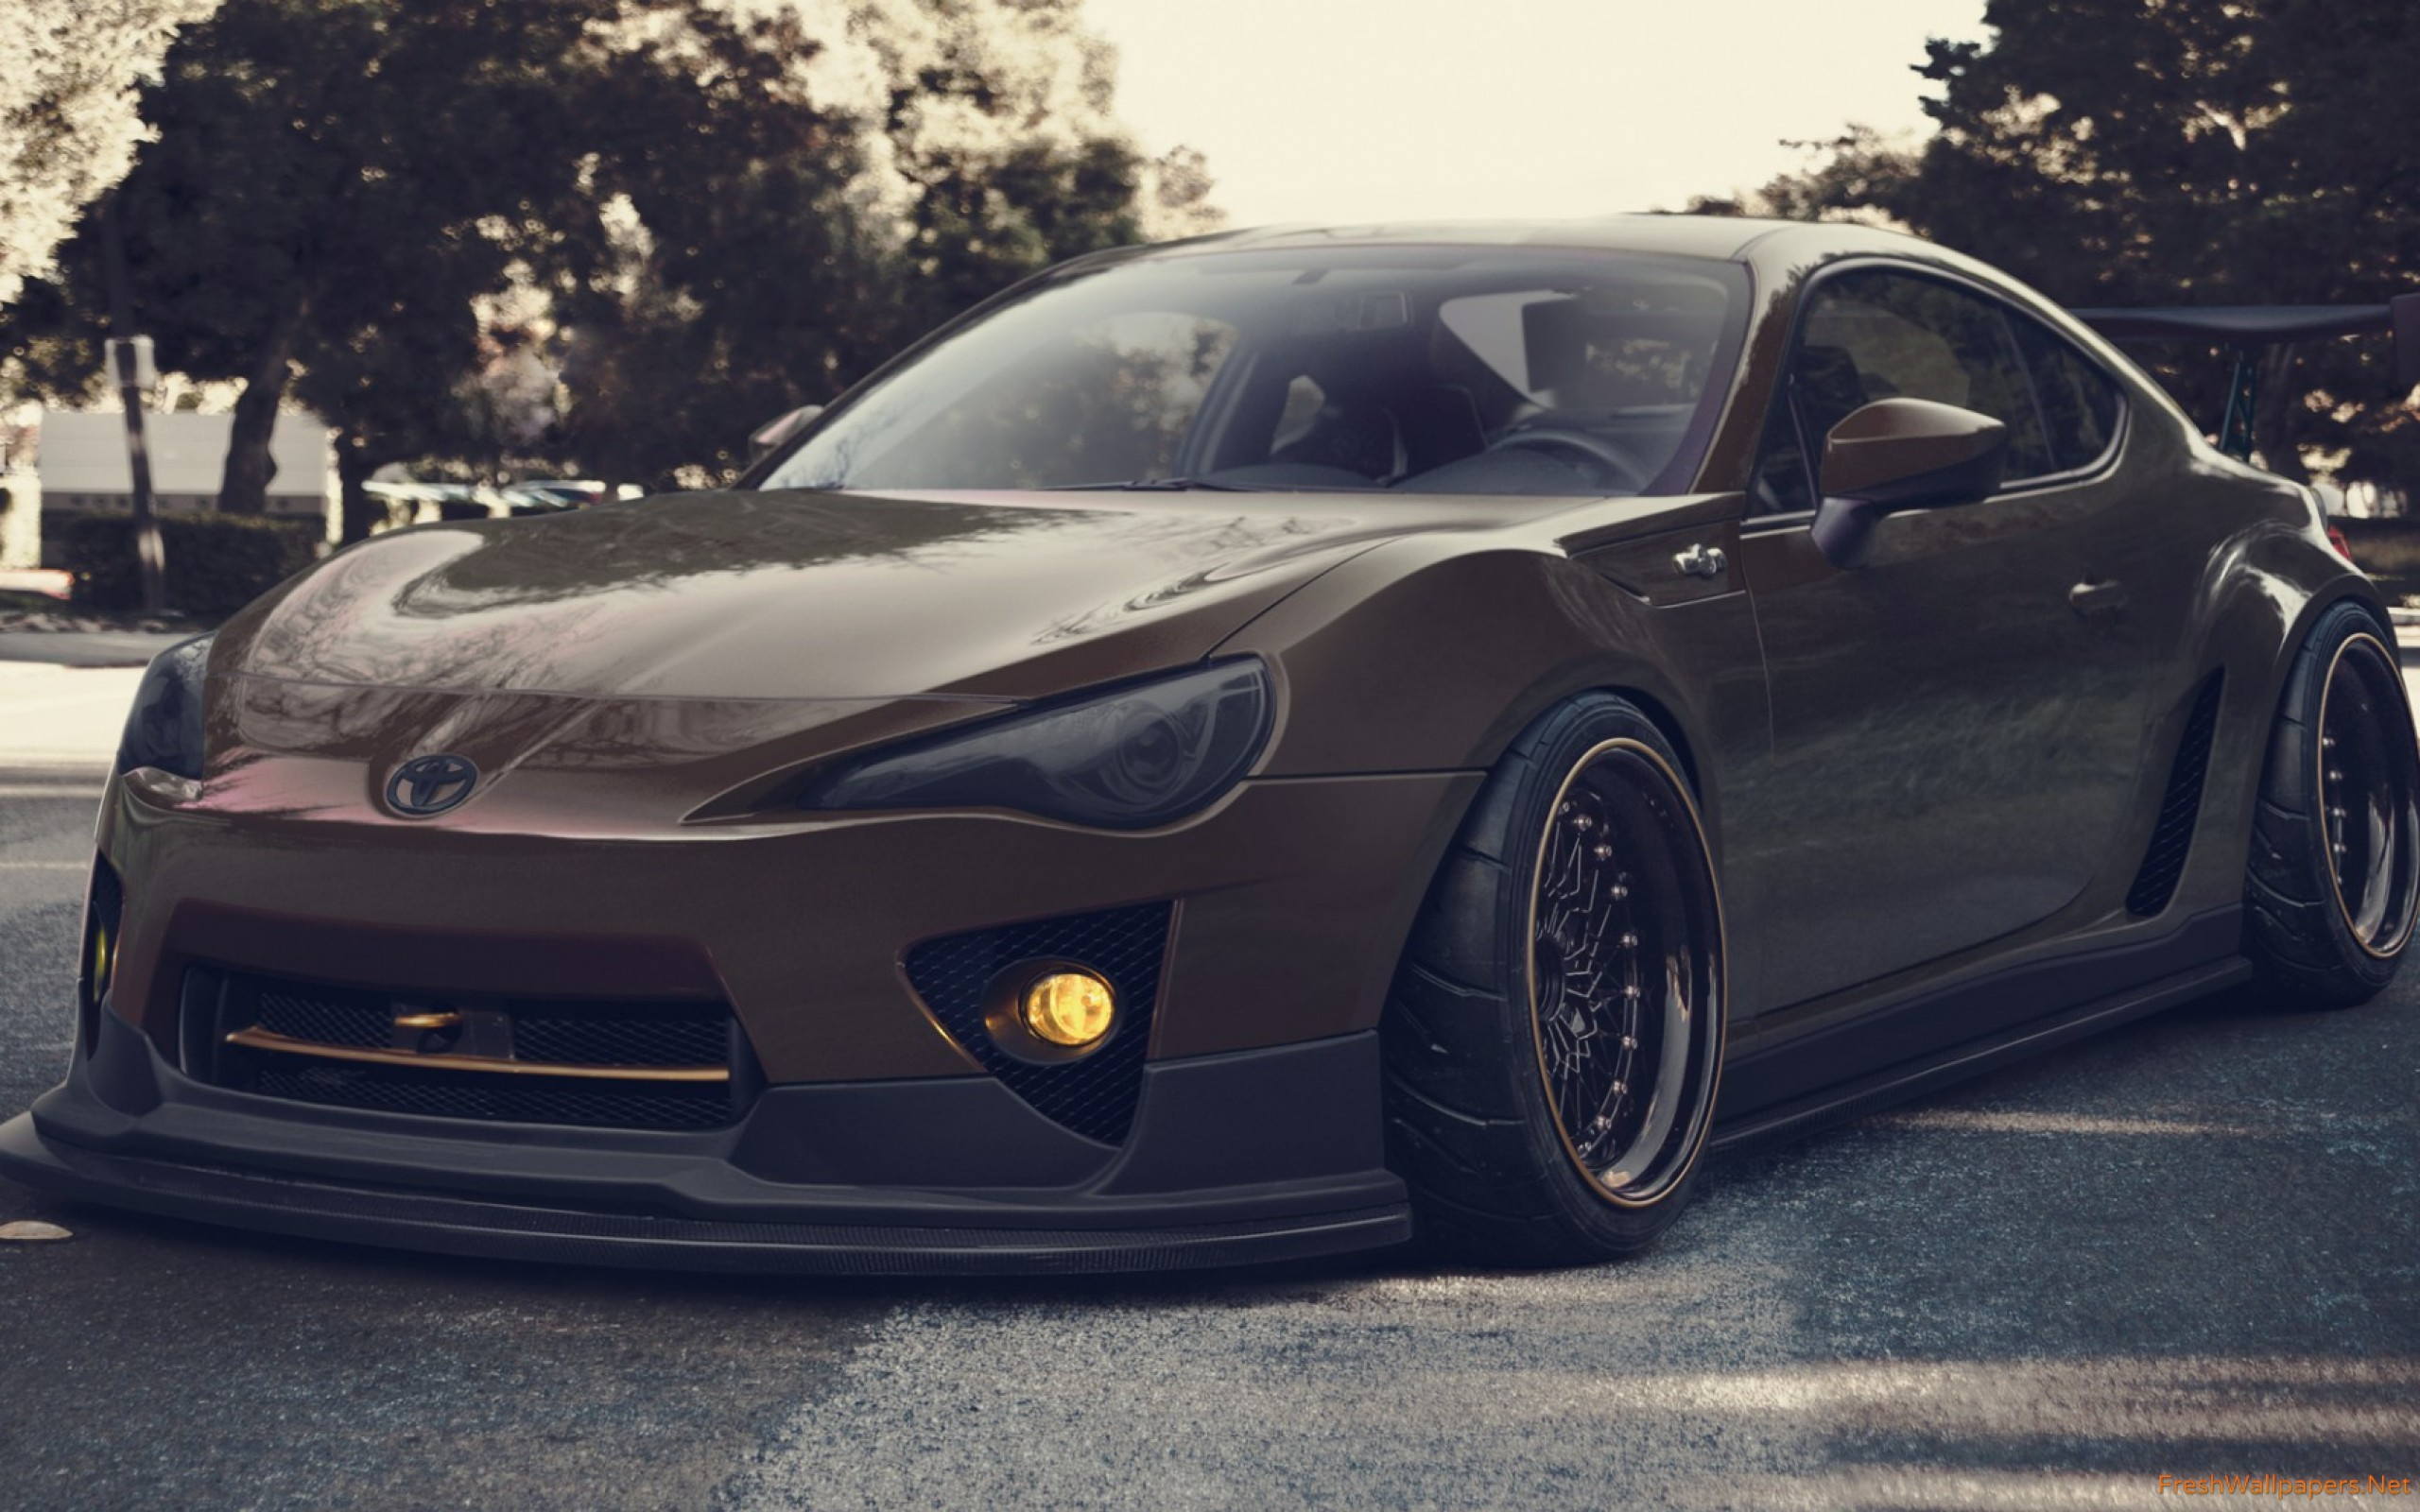 Toyota Gt 86 Wallpapers Images Photos Pictures Backgrounds